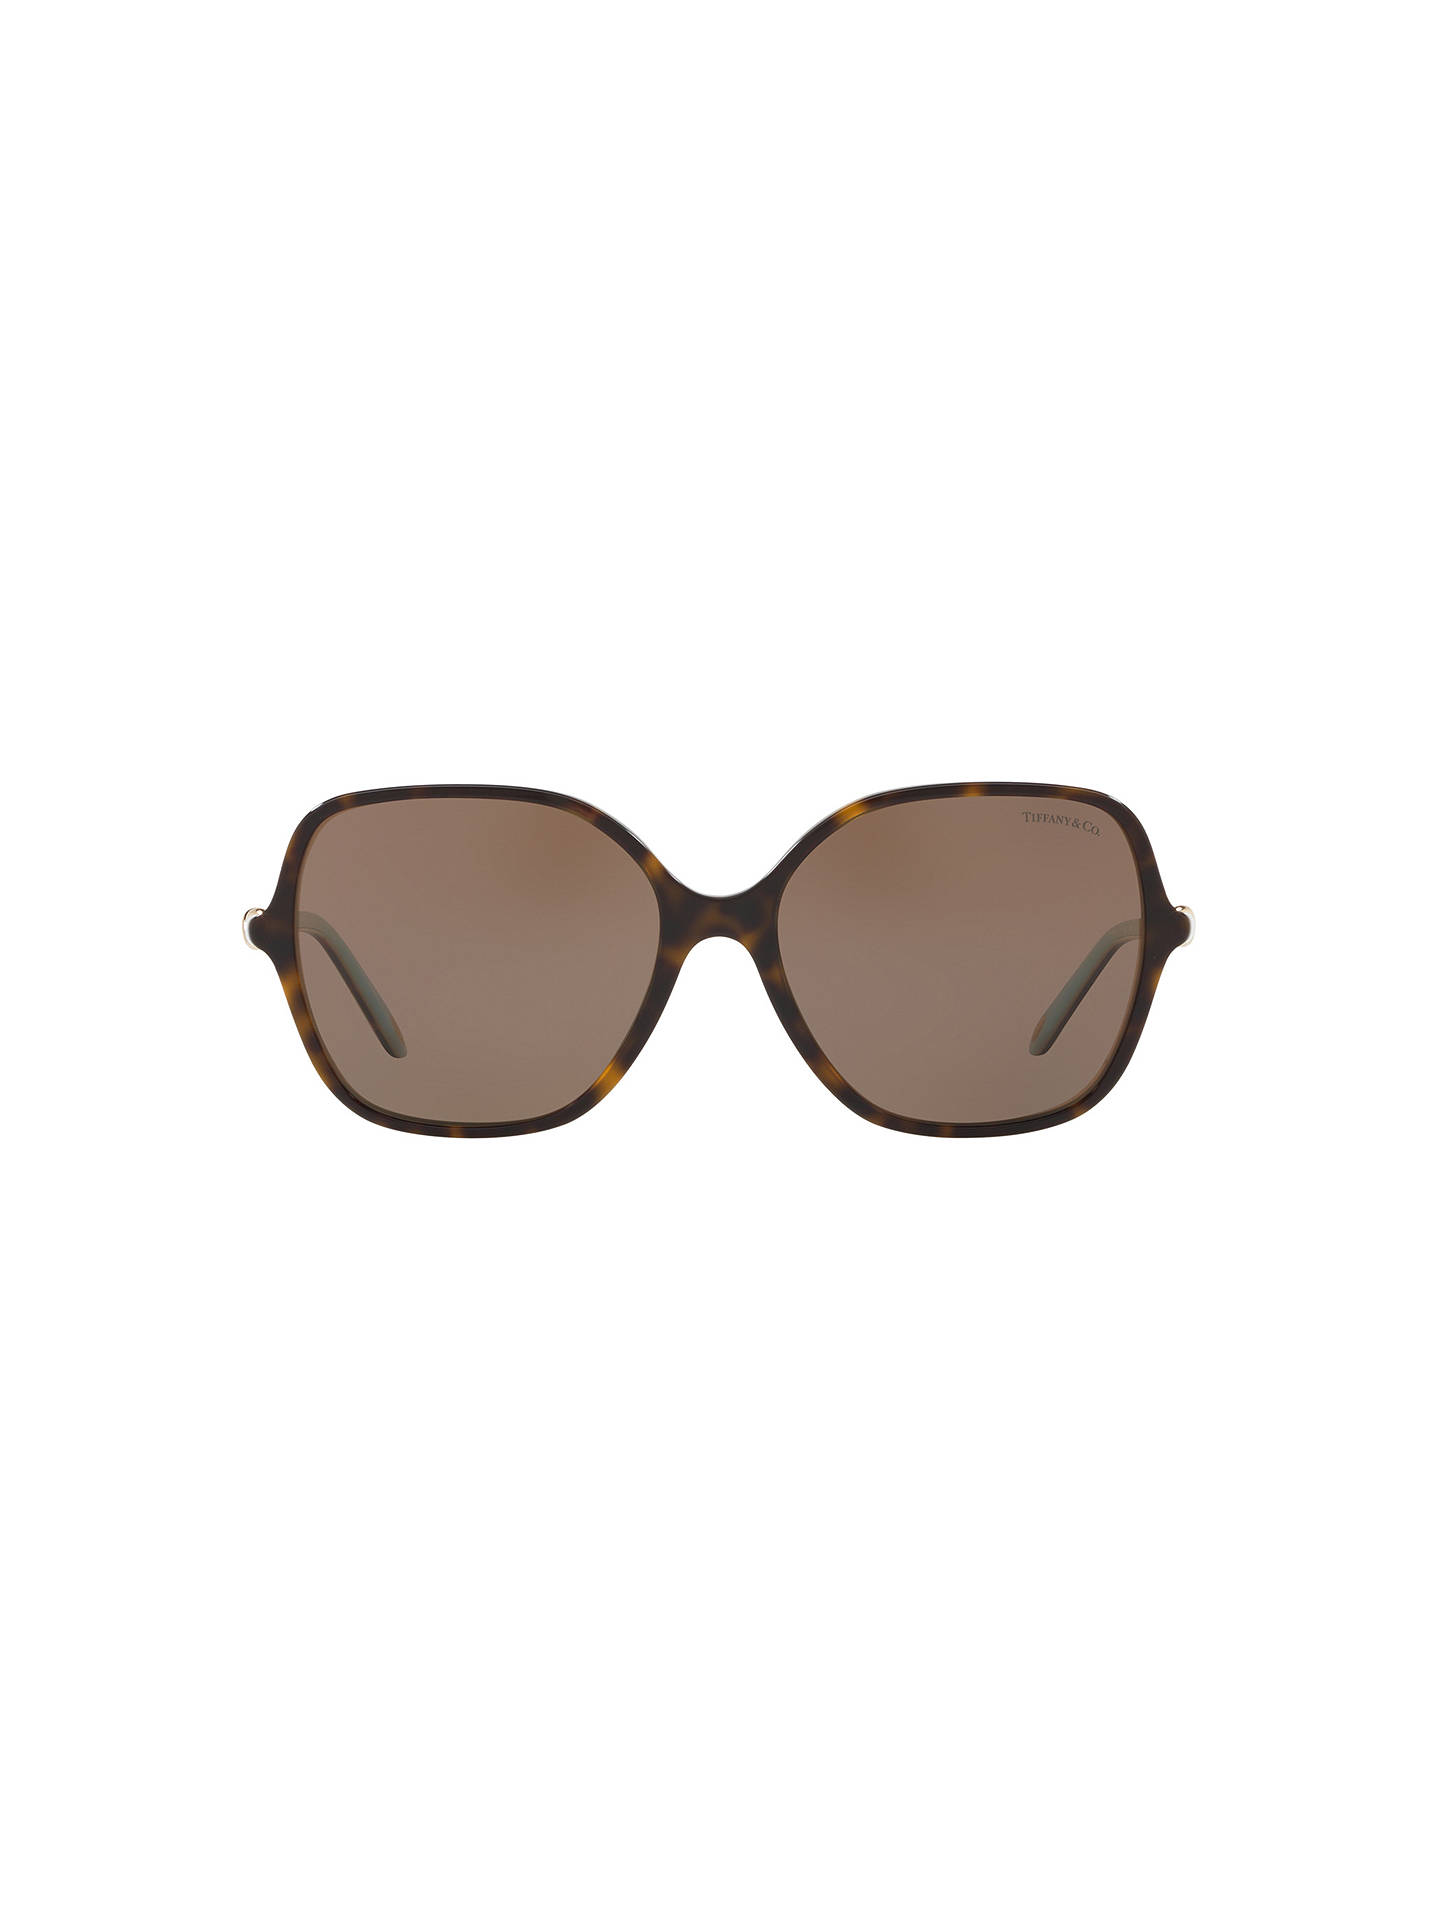 BuyTiffany & Co TF4145B Square Sunglasses, Tortoise/Brown Online at johnlewis.com